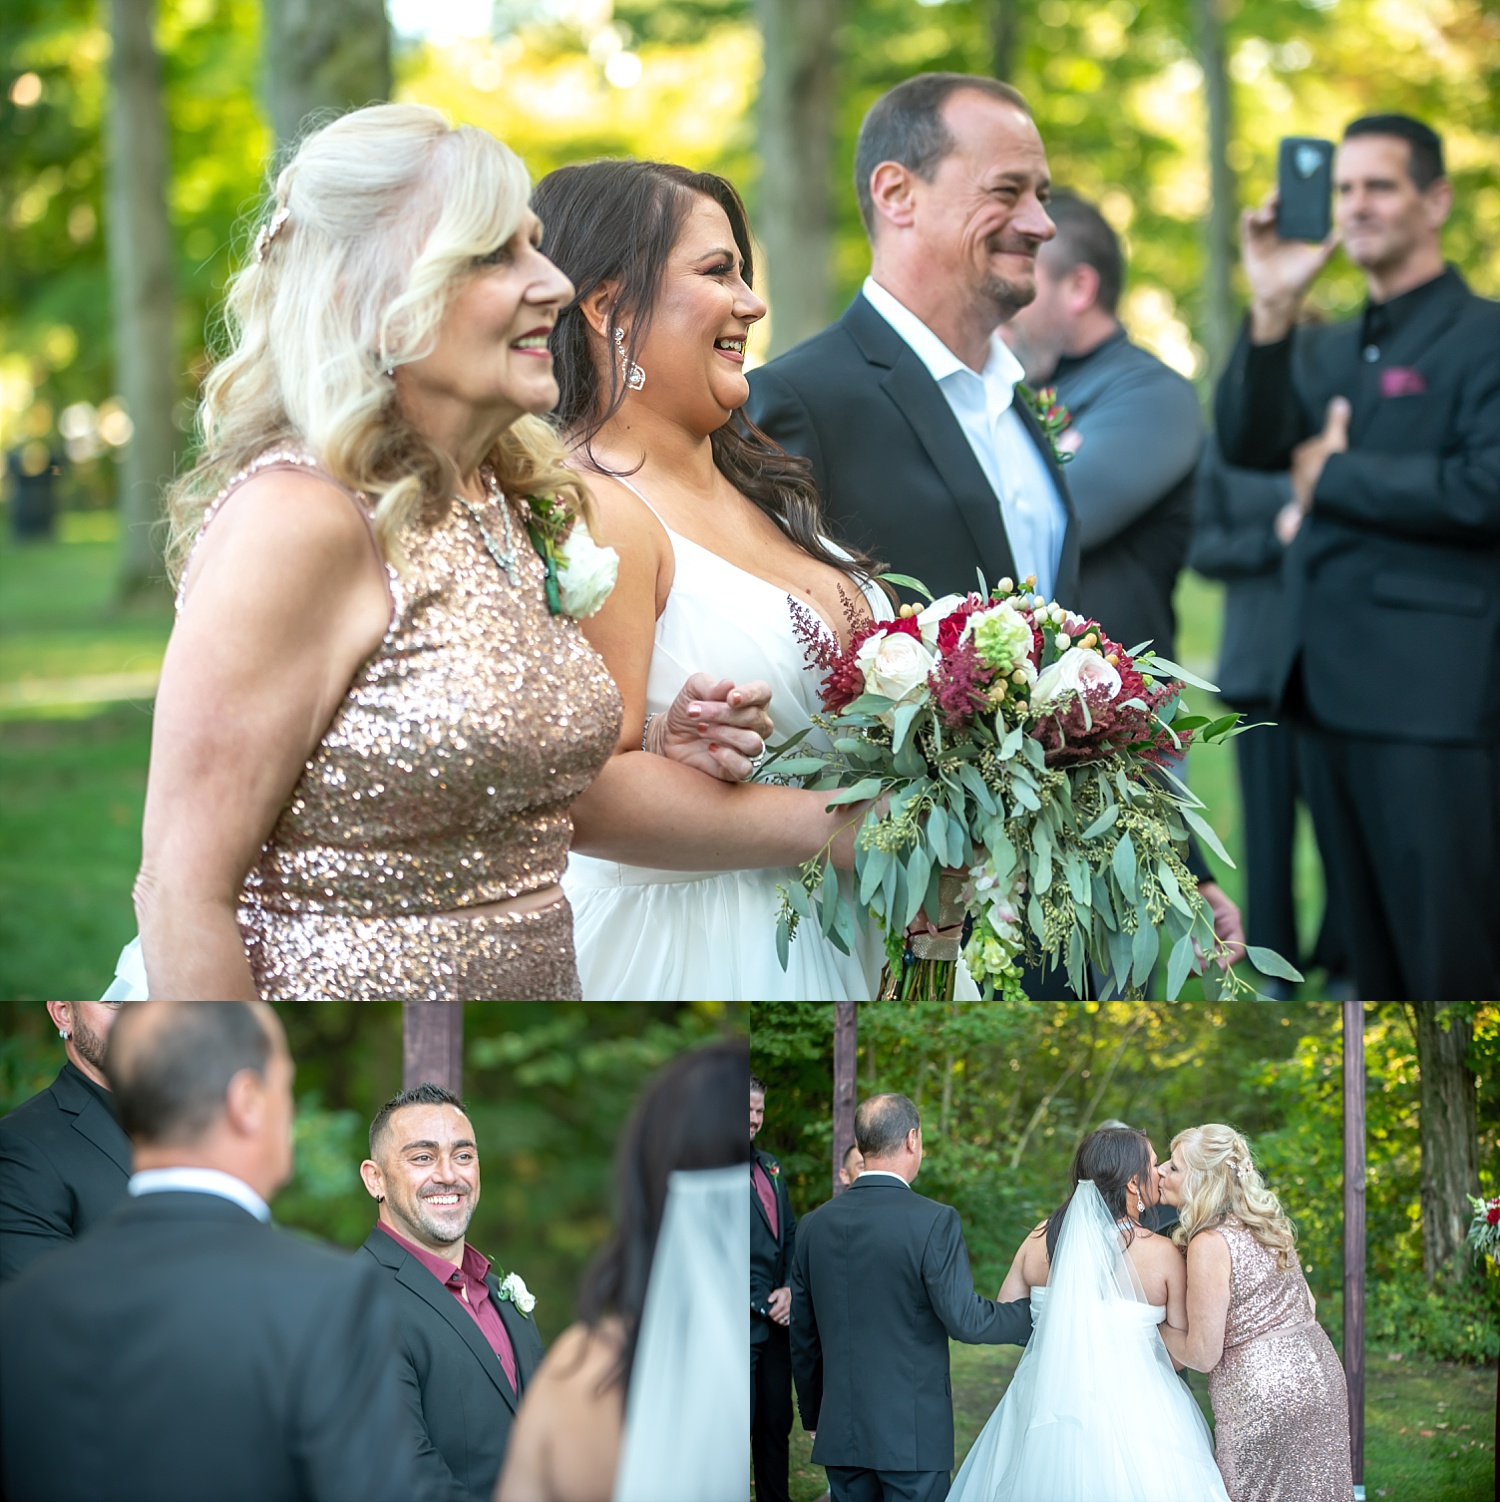 Hannah-cessna-photography-akron-cleveland-ohio-wedding-photograper_0101.jpg